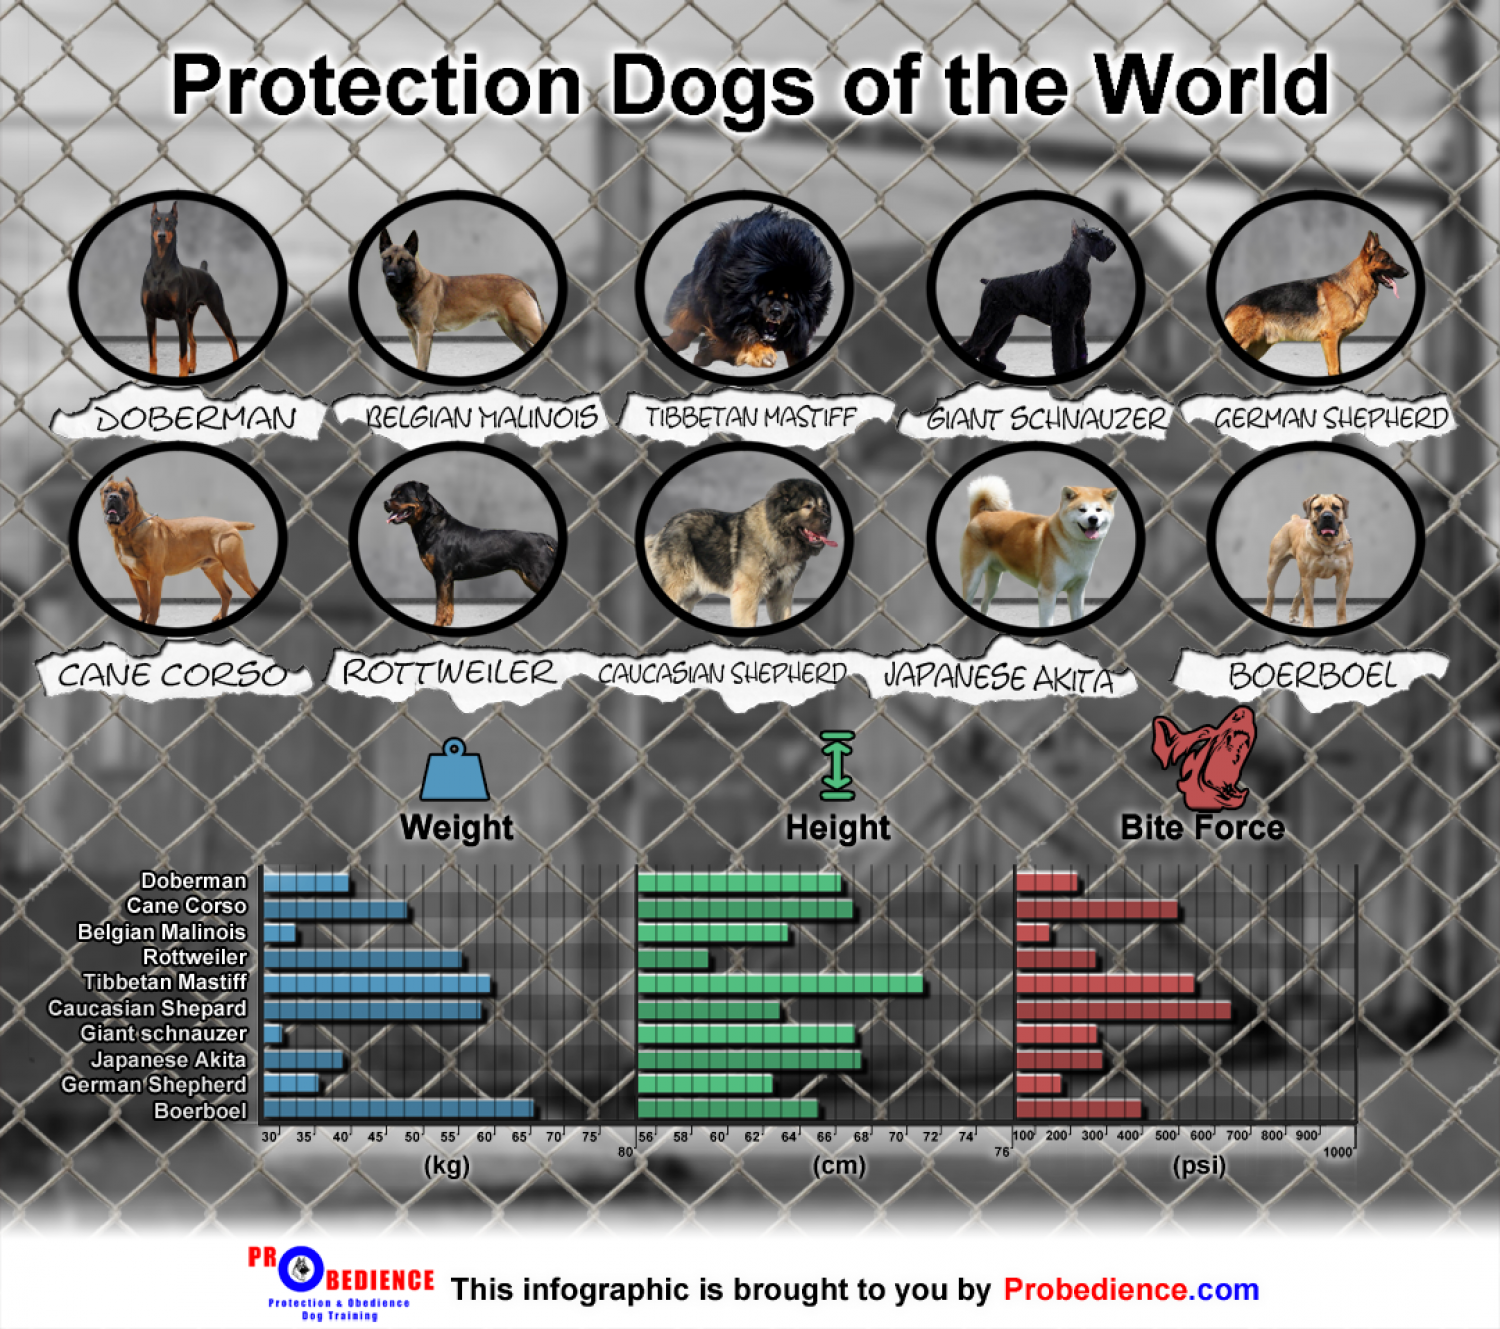 Protection Dogs of the World - An Infographic Infographic